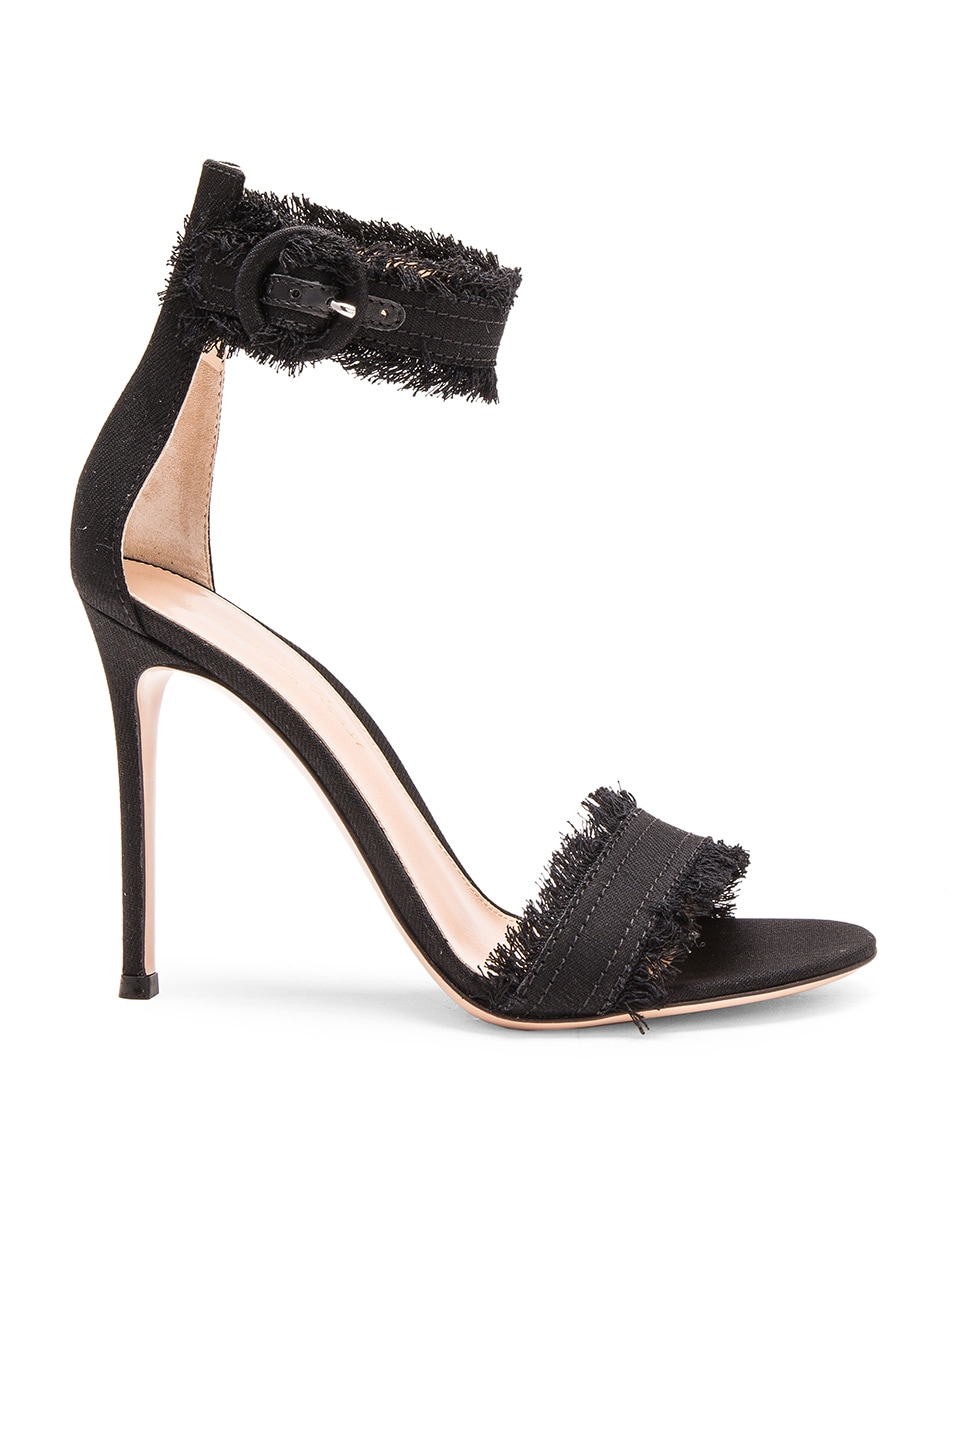 Gianvito Rossi Denim Ankle-Strap Sandals sale find great Z0CjdTyohg